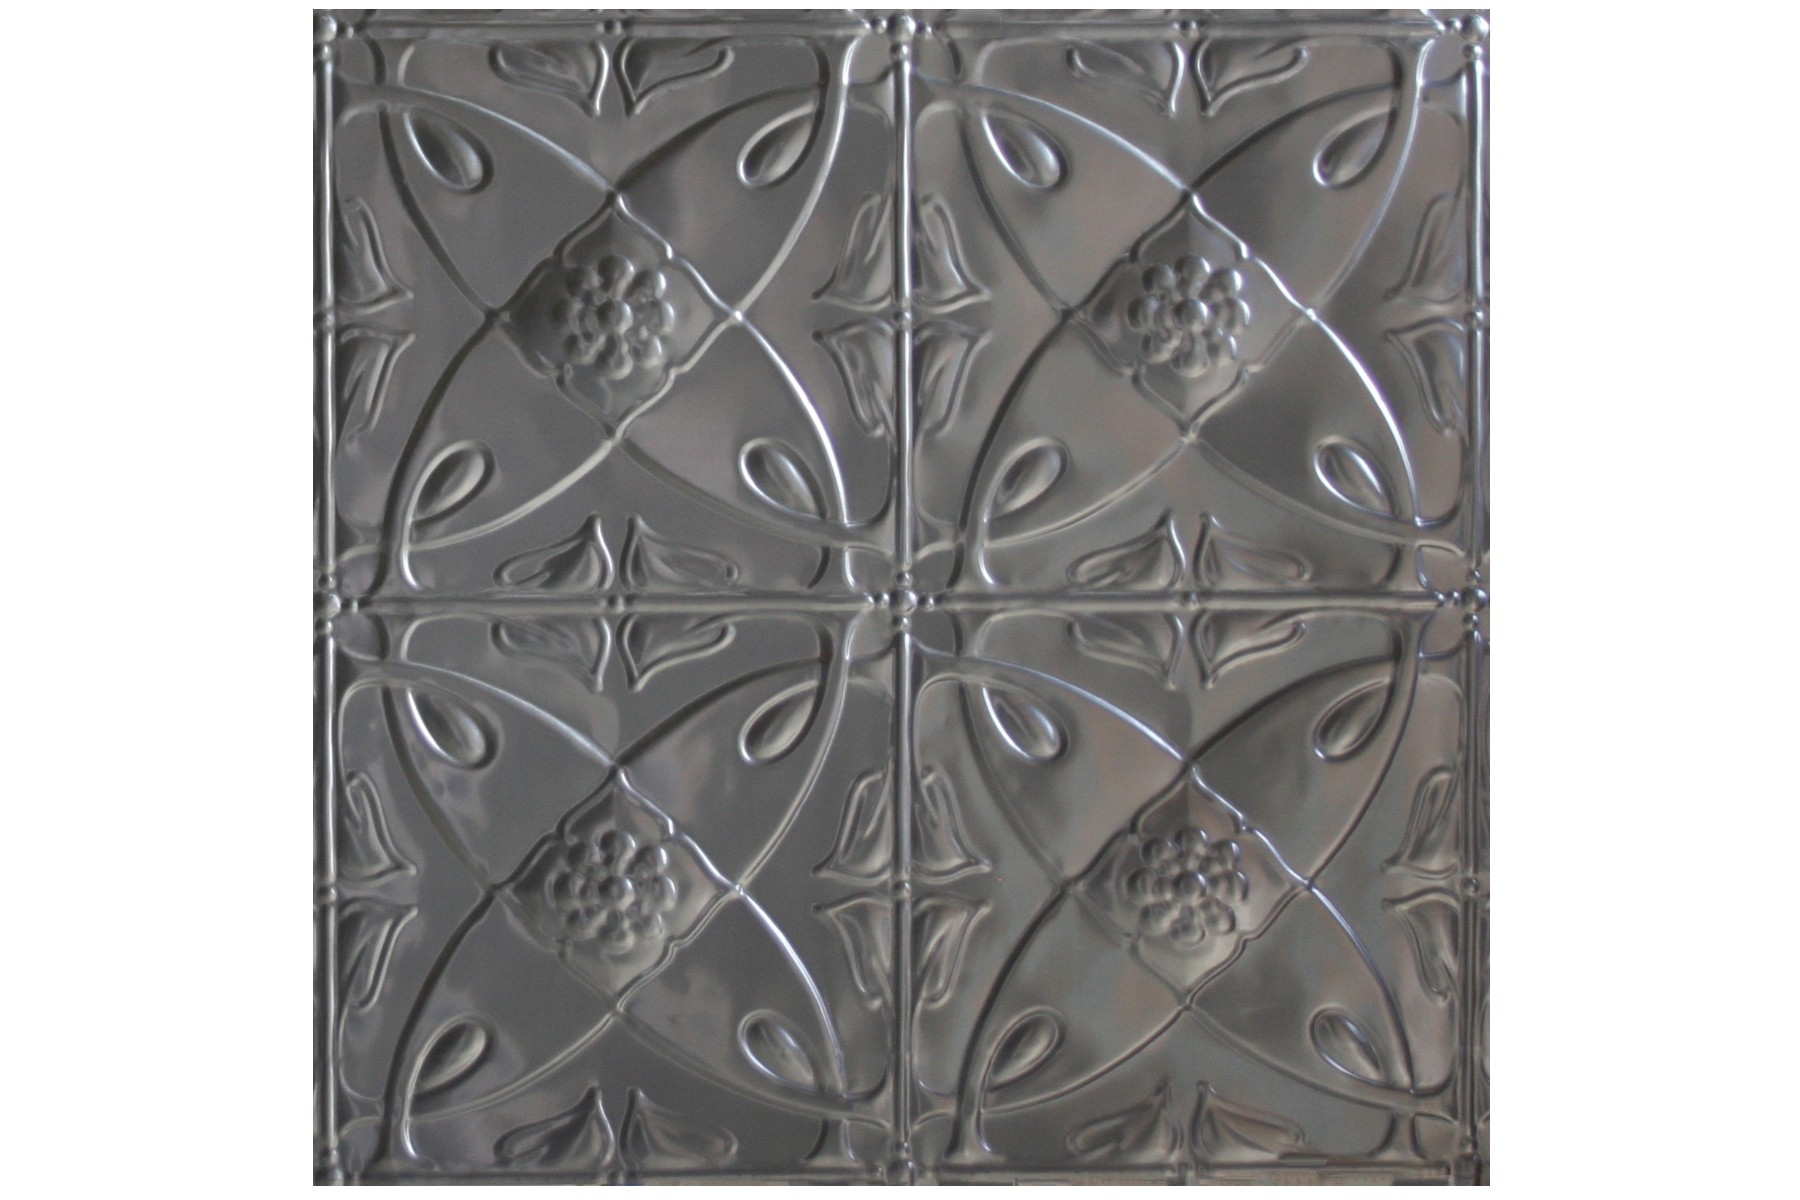 Wunderlich Pressed Metal Panels No 1056 Carousel